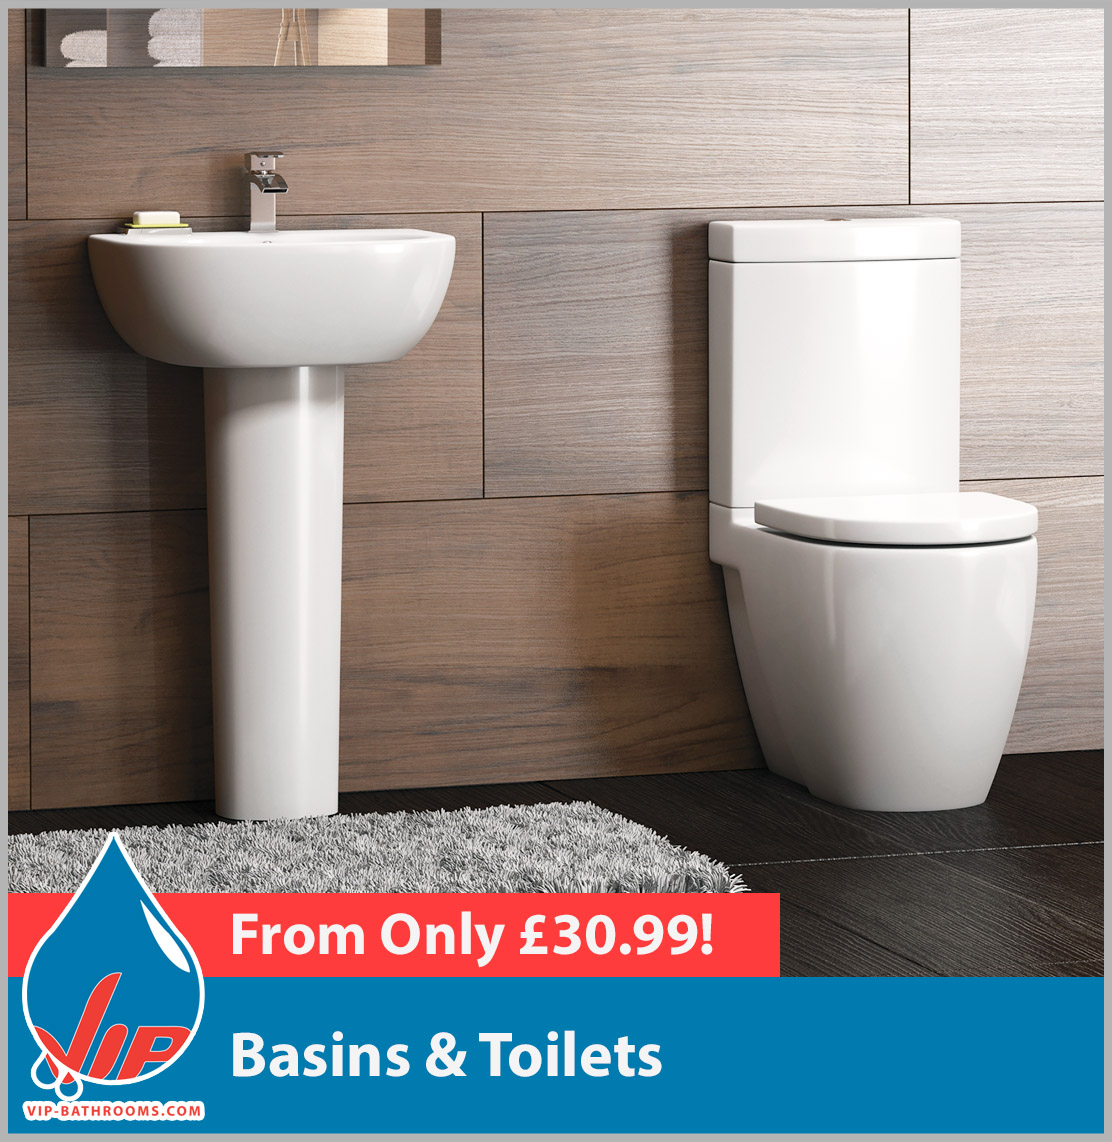 Click here to see the superb Basins and Toilets we have to offer